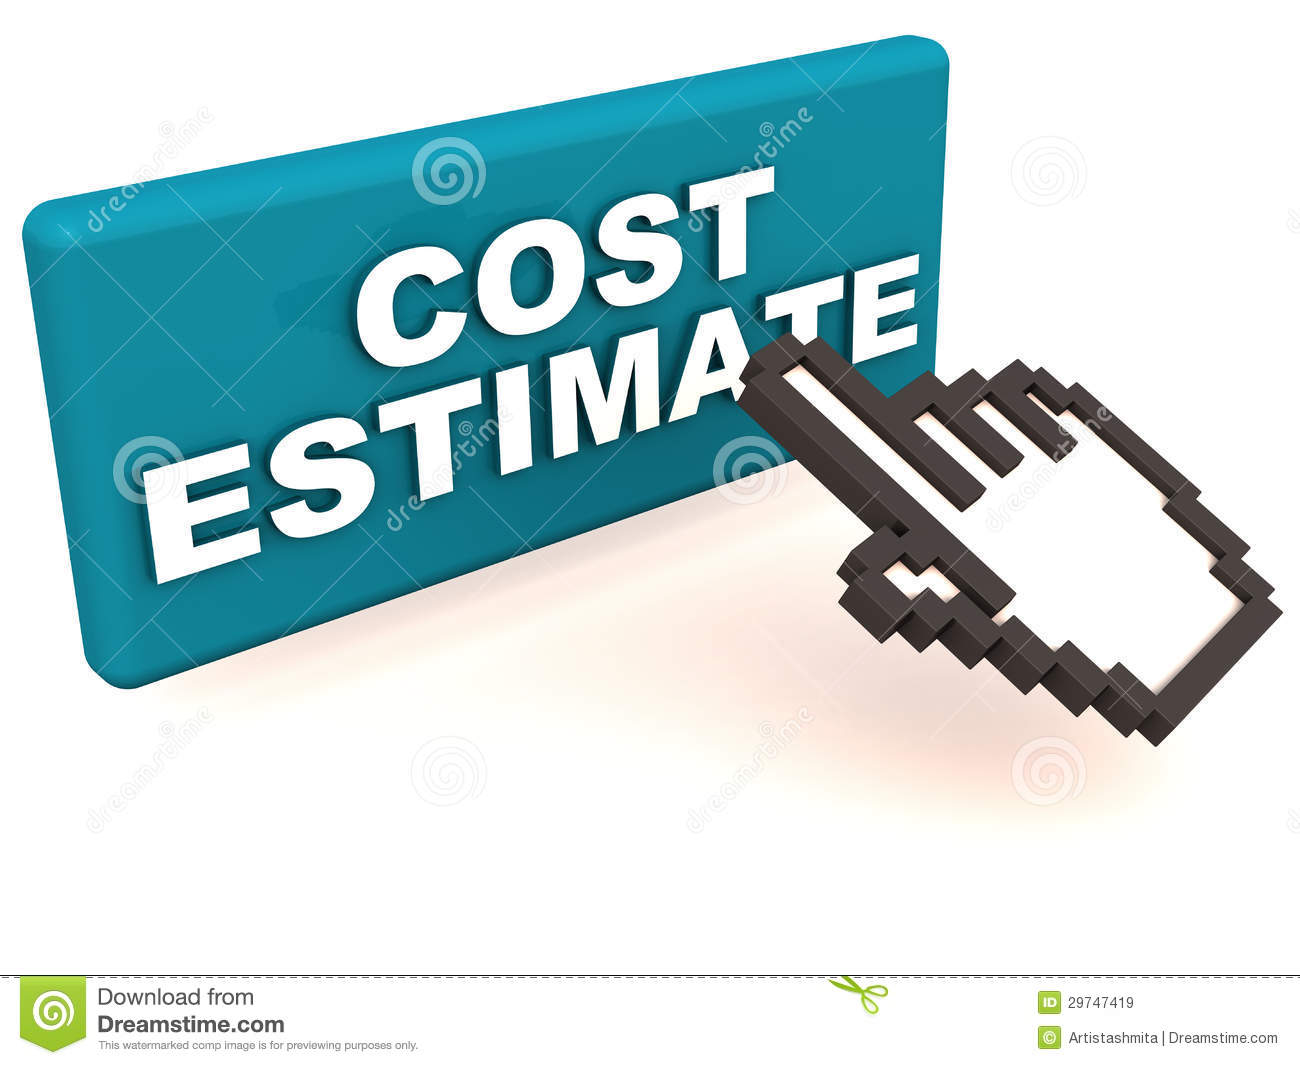 Cost U Less >> Cost Estimate Royalty Free Stock Images - Image: 29747419